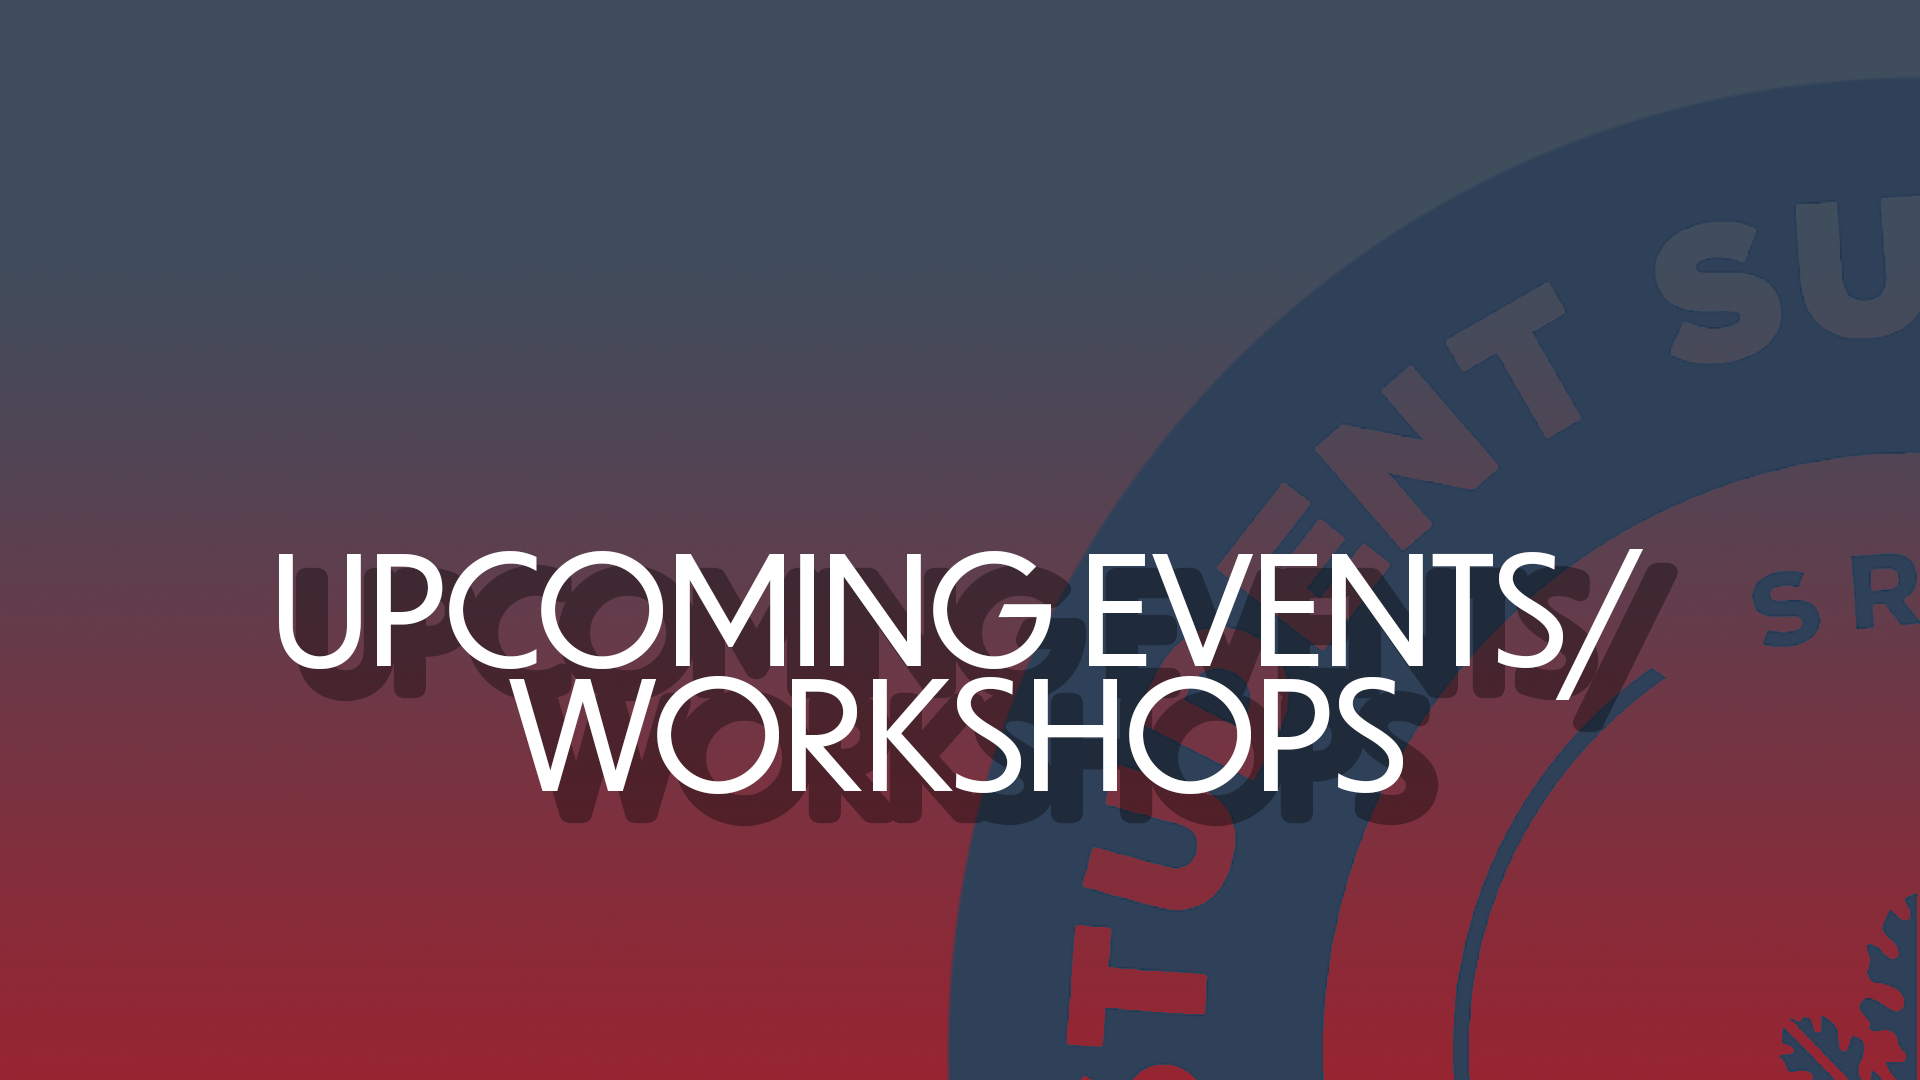 Upcoming Events/Workshops